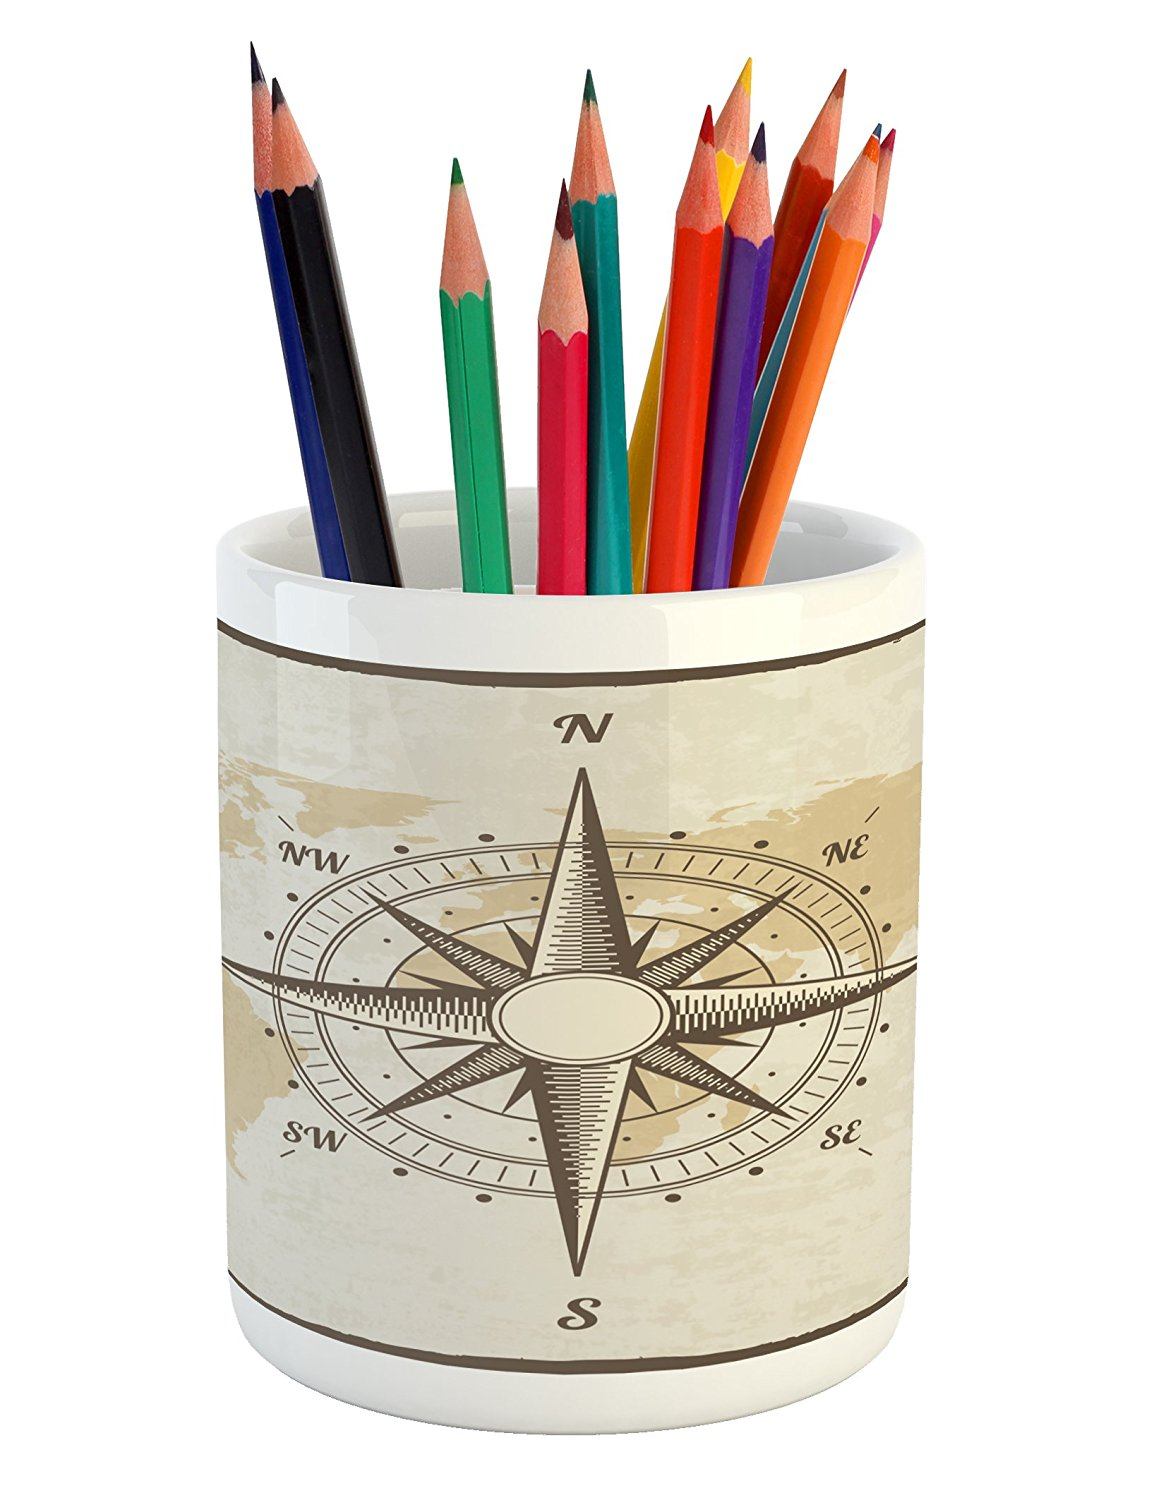 Lunarable Nautical Pencil Pen Holder, Compass on World Map with Continents Africa America Antique Adventure, Printed Ceramic Pencil Pen Holder for Desk Office Accessory, Beige Tan and Brown